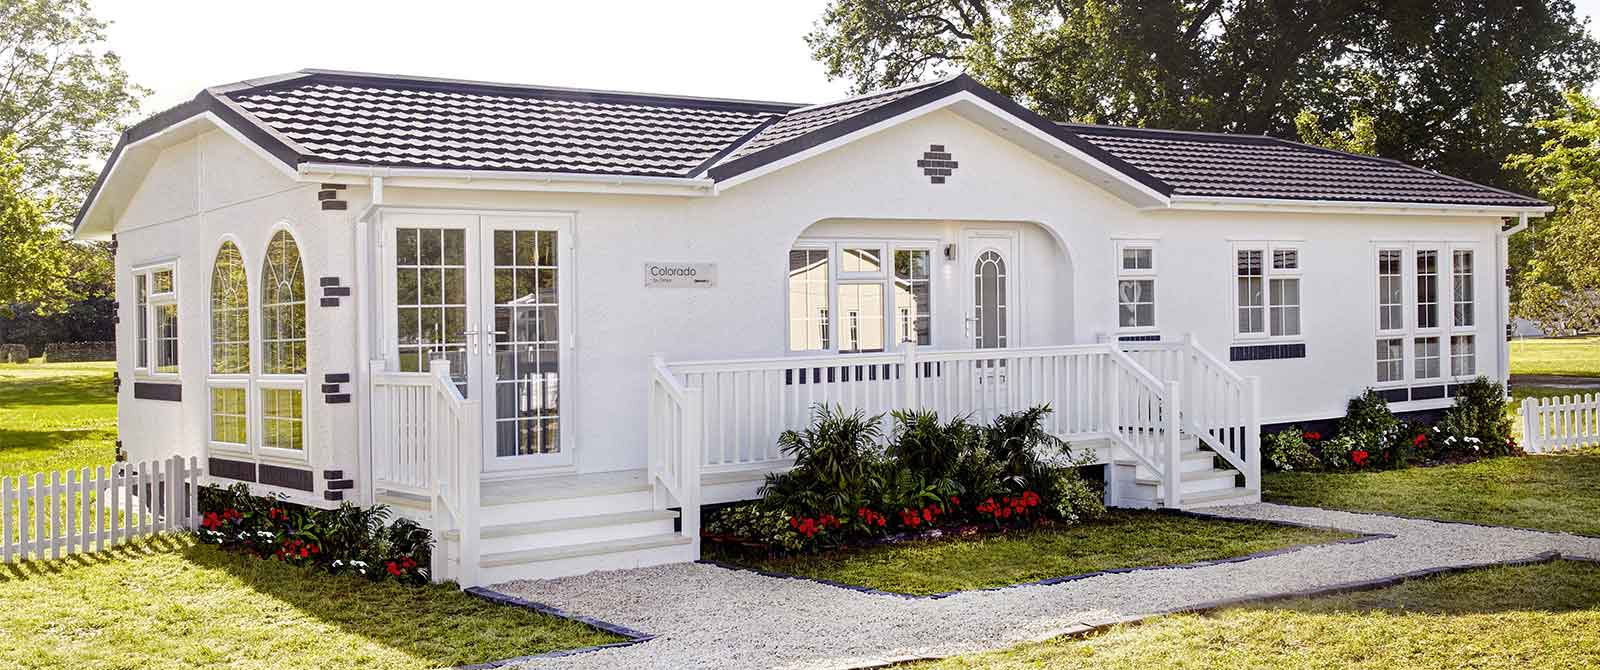 Can You Finance A Park Home With A Mortgage?